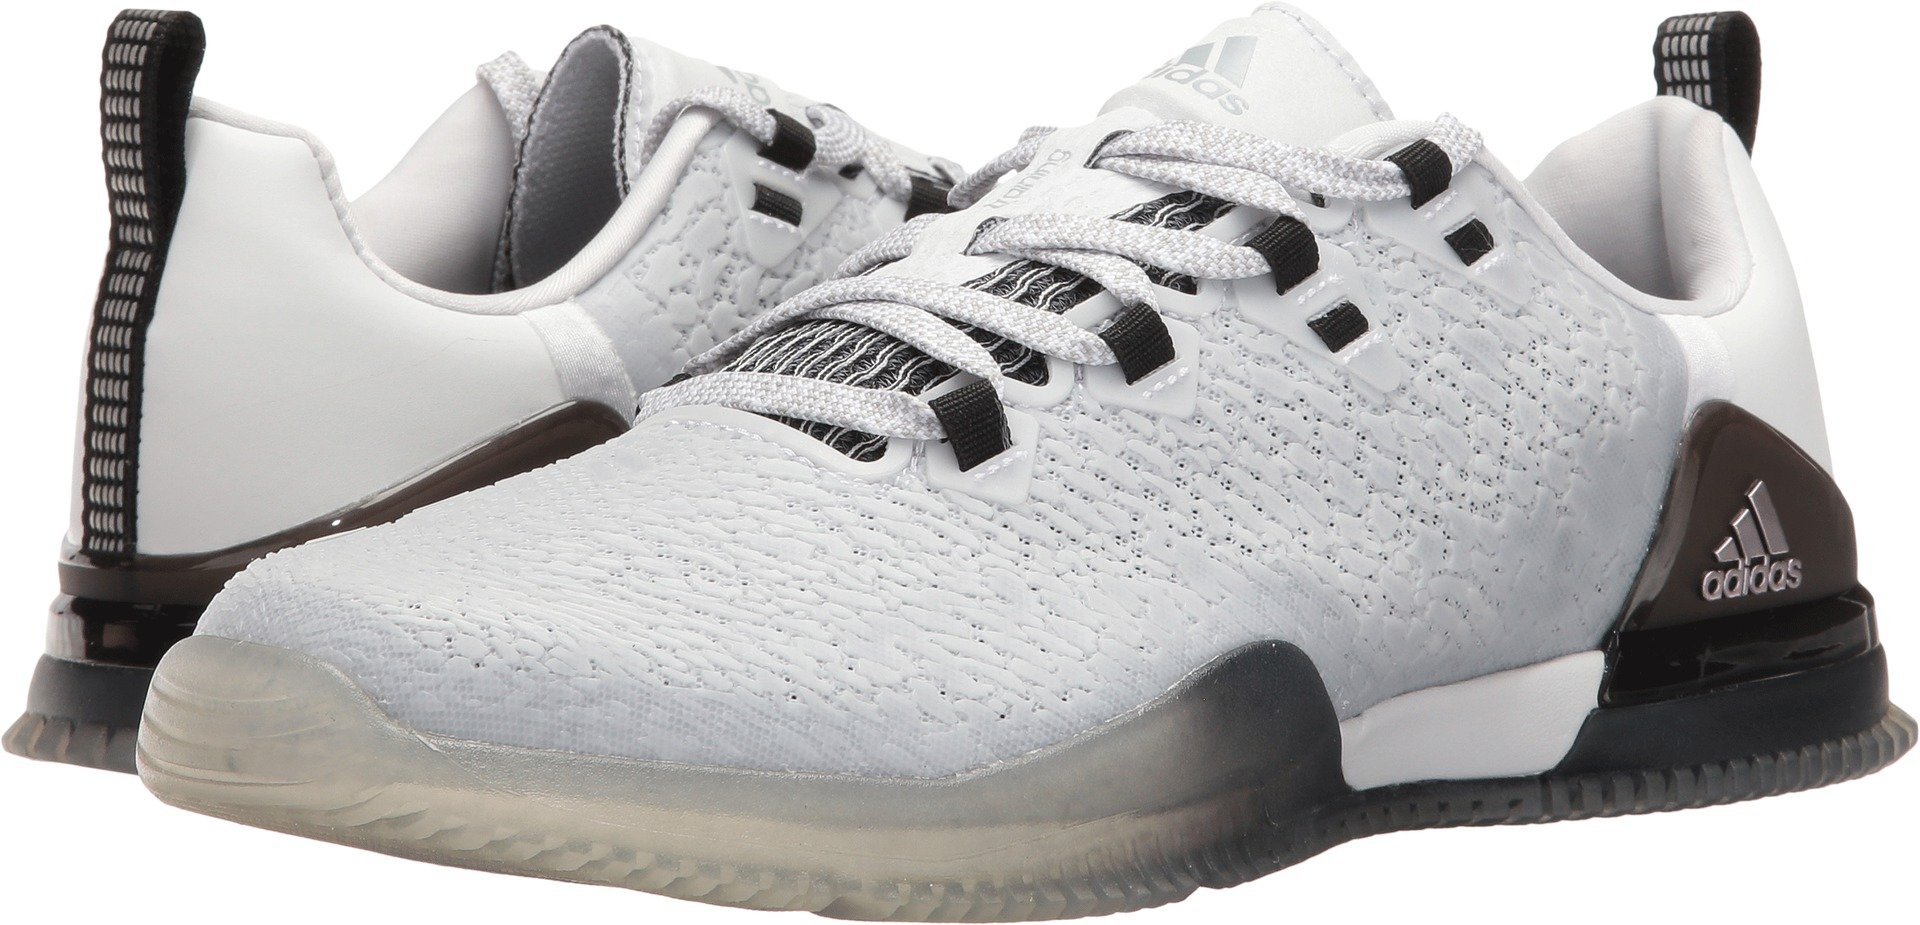 adidas Women's Shoes | Crazypower TR Cross-Trainer, White/Vapour Grey/Clear Grey, (9 M US)